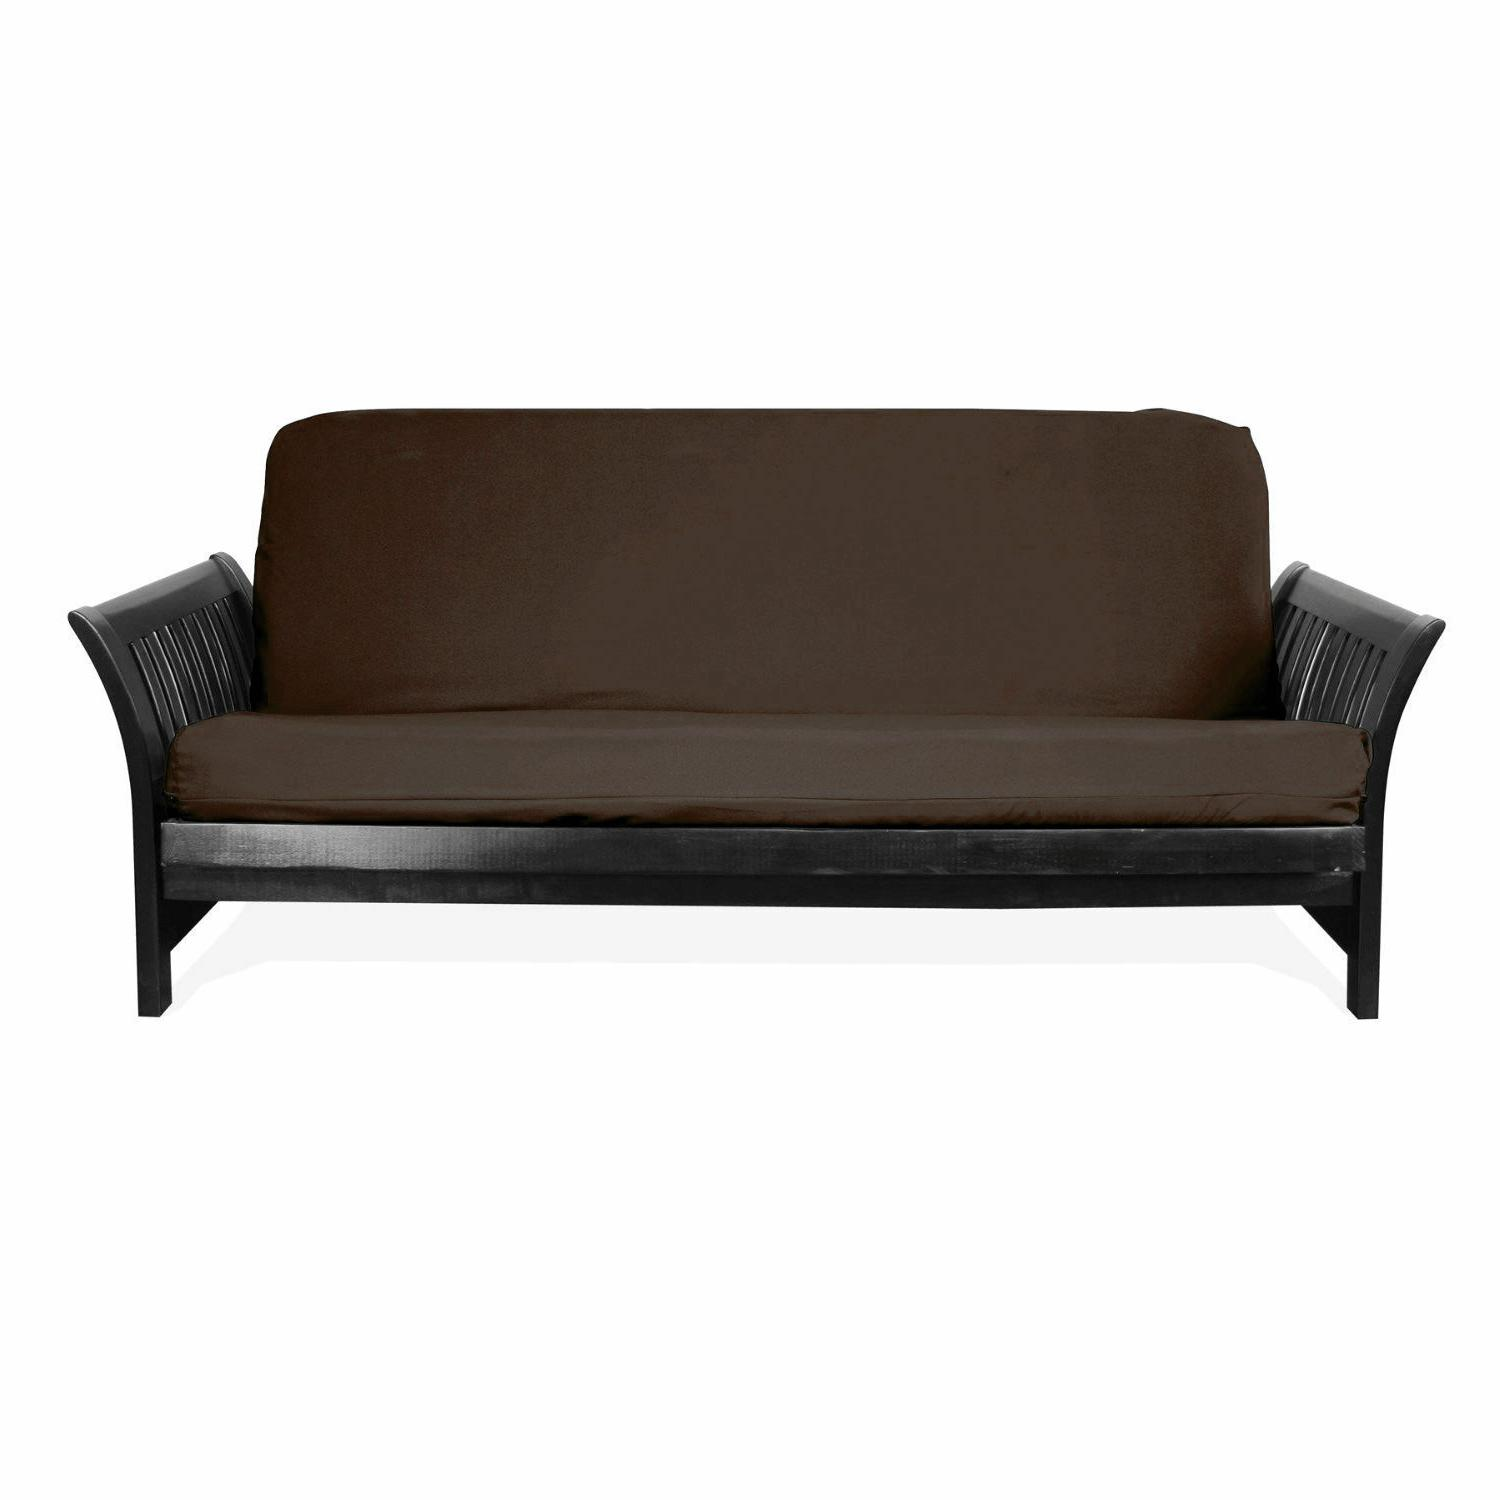 Full Size Futon Mattresses Cover 6-8 Or